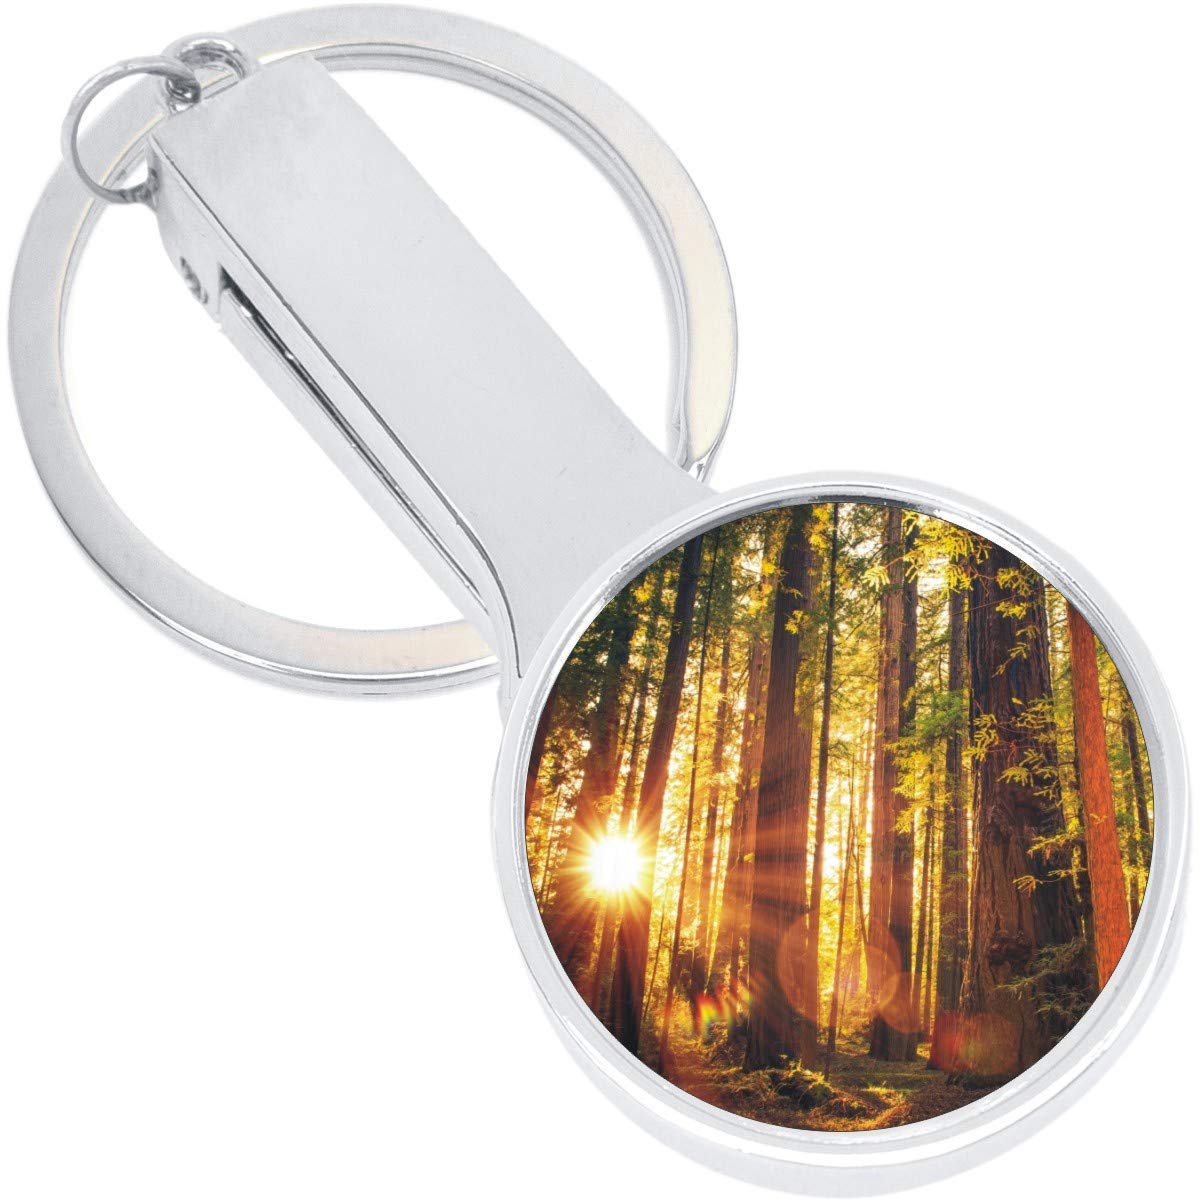 Glorious Nature Purse Hanger with Keychain